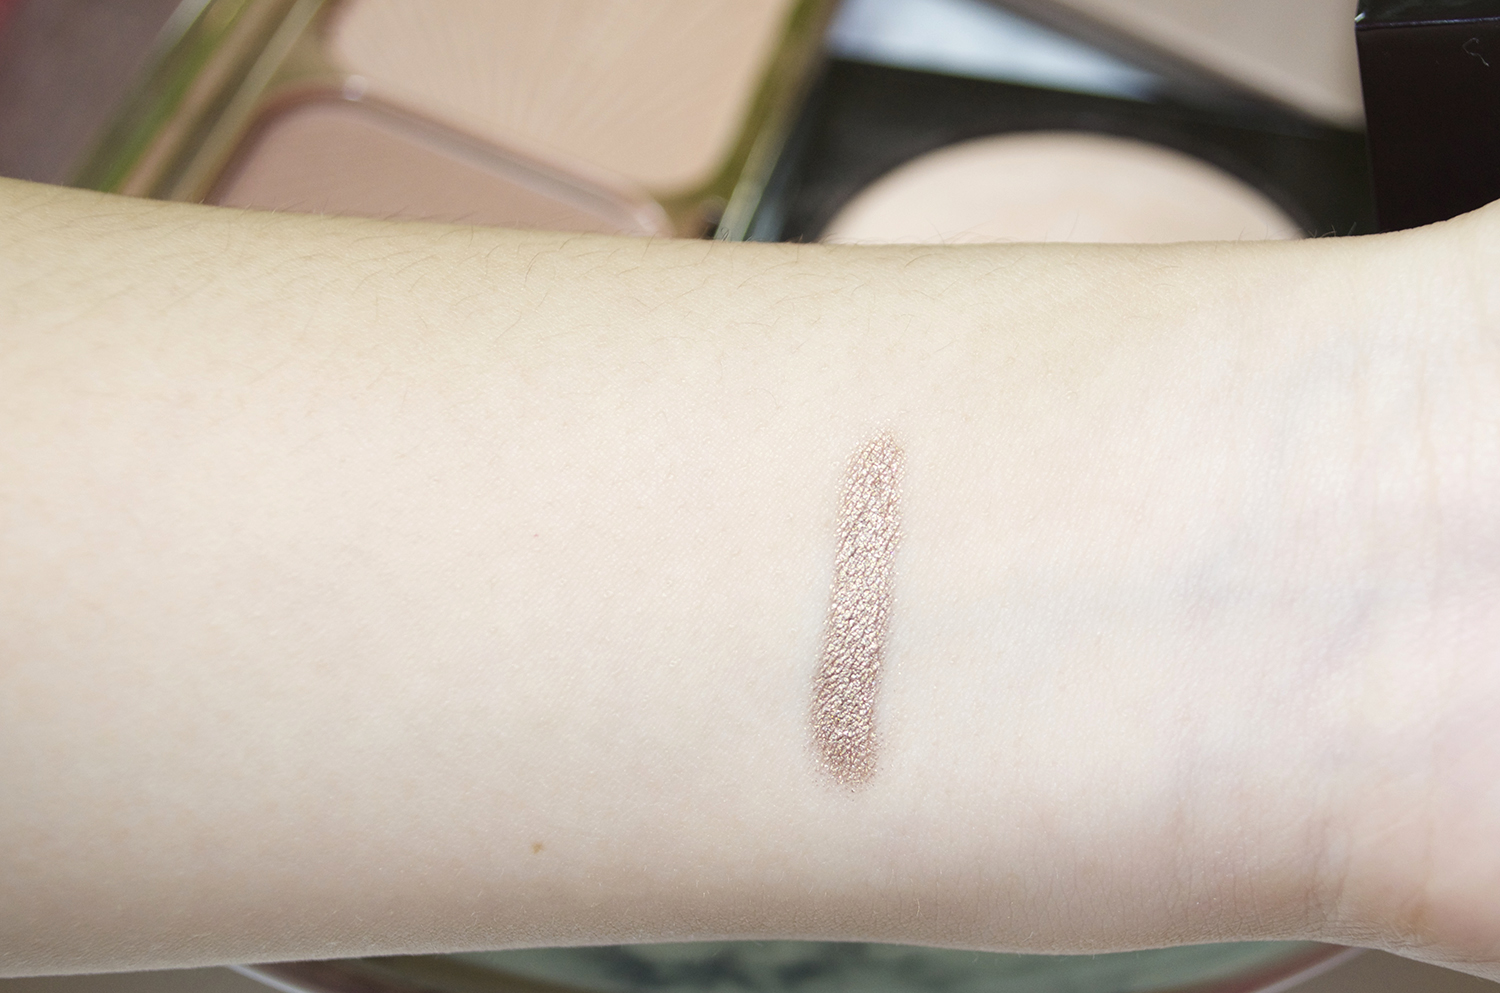 Laura Mercier's Caviar Eye Stick in Sand Glow